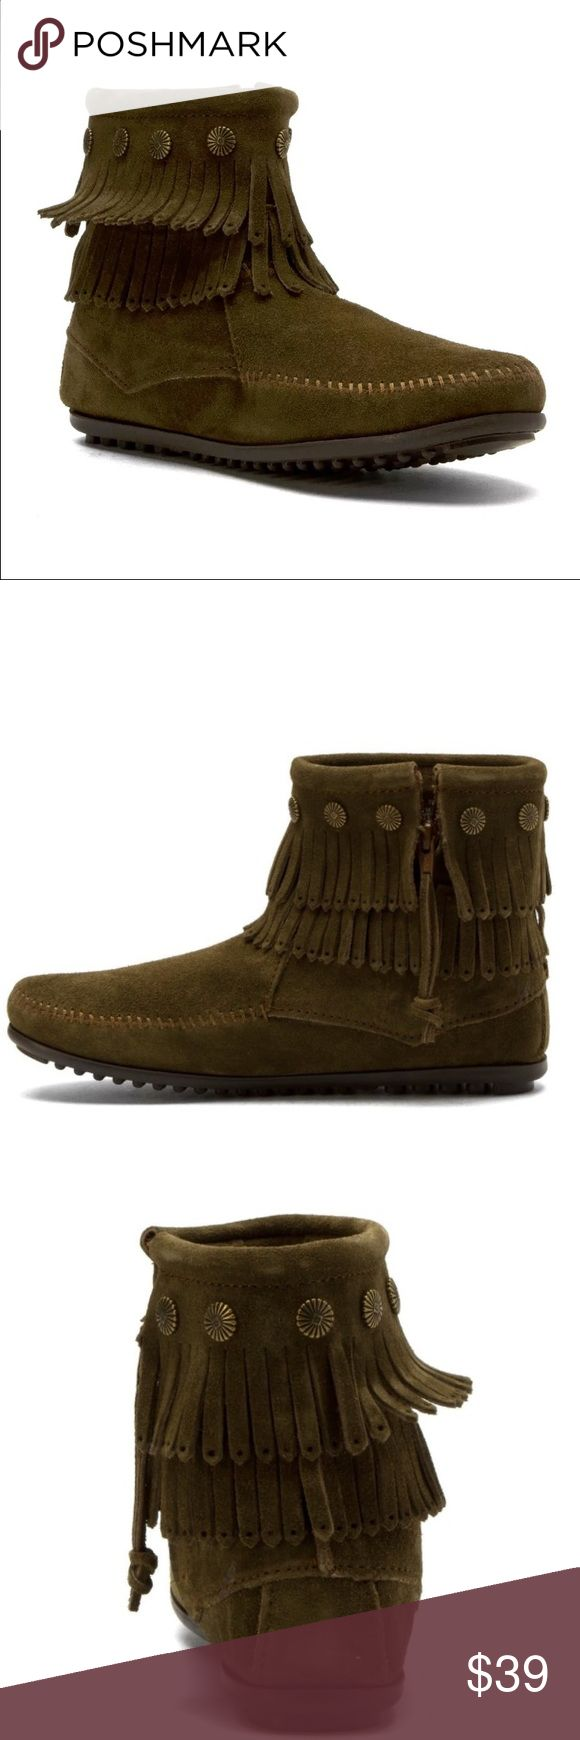 Minnetonka Double Fringe Ankle Boot Loden/olive green Minnetonka double fringe ankle boots. So so cute and comfy. Never worn. New with the box. OPEN TO OFFERS ❤ fits like a 5-6 Minnetonka Shoes Ankle Boots & Booties